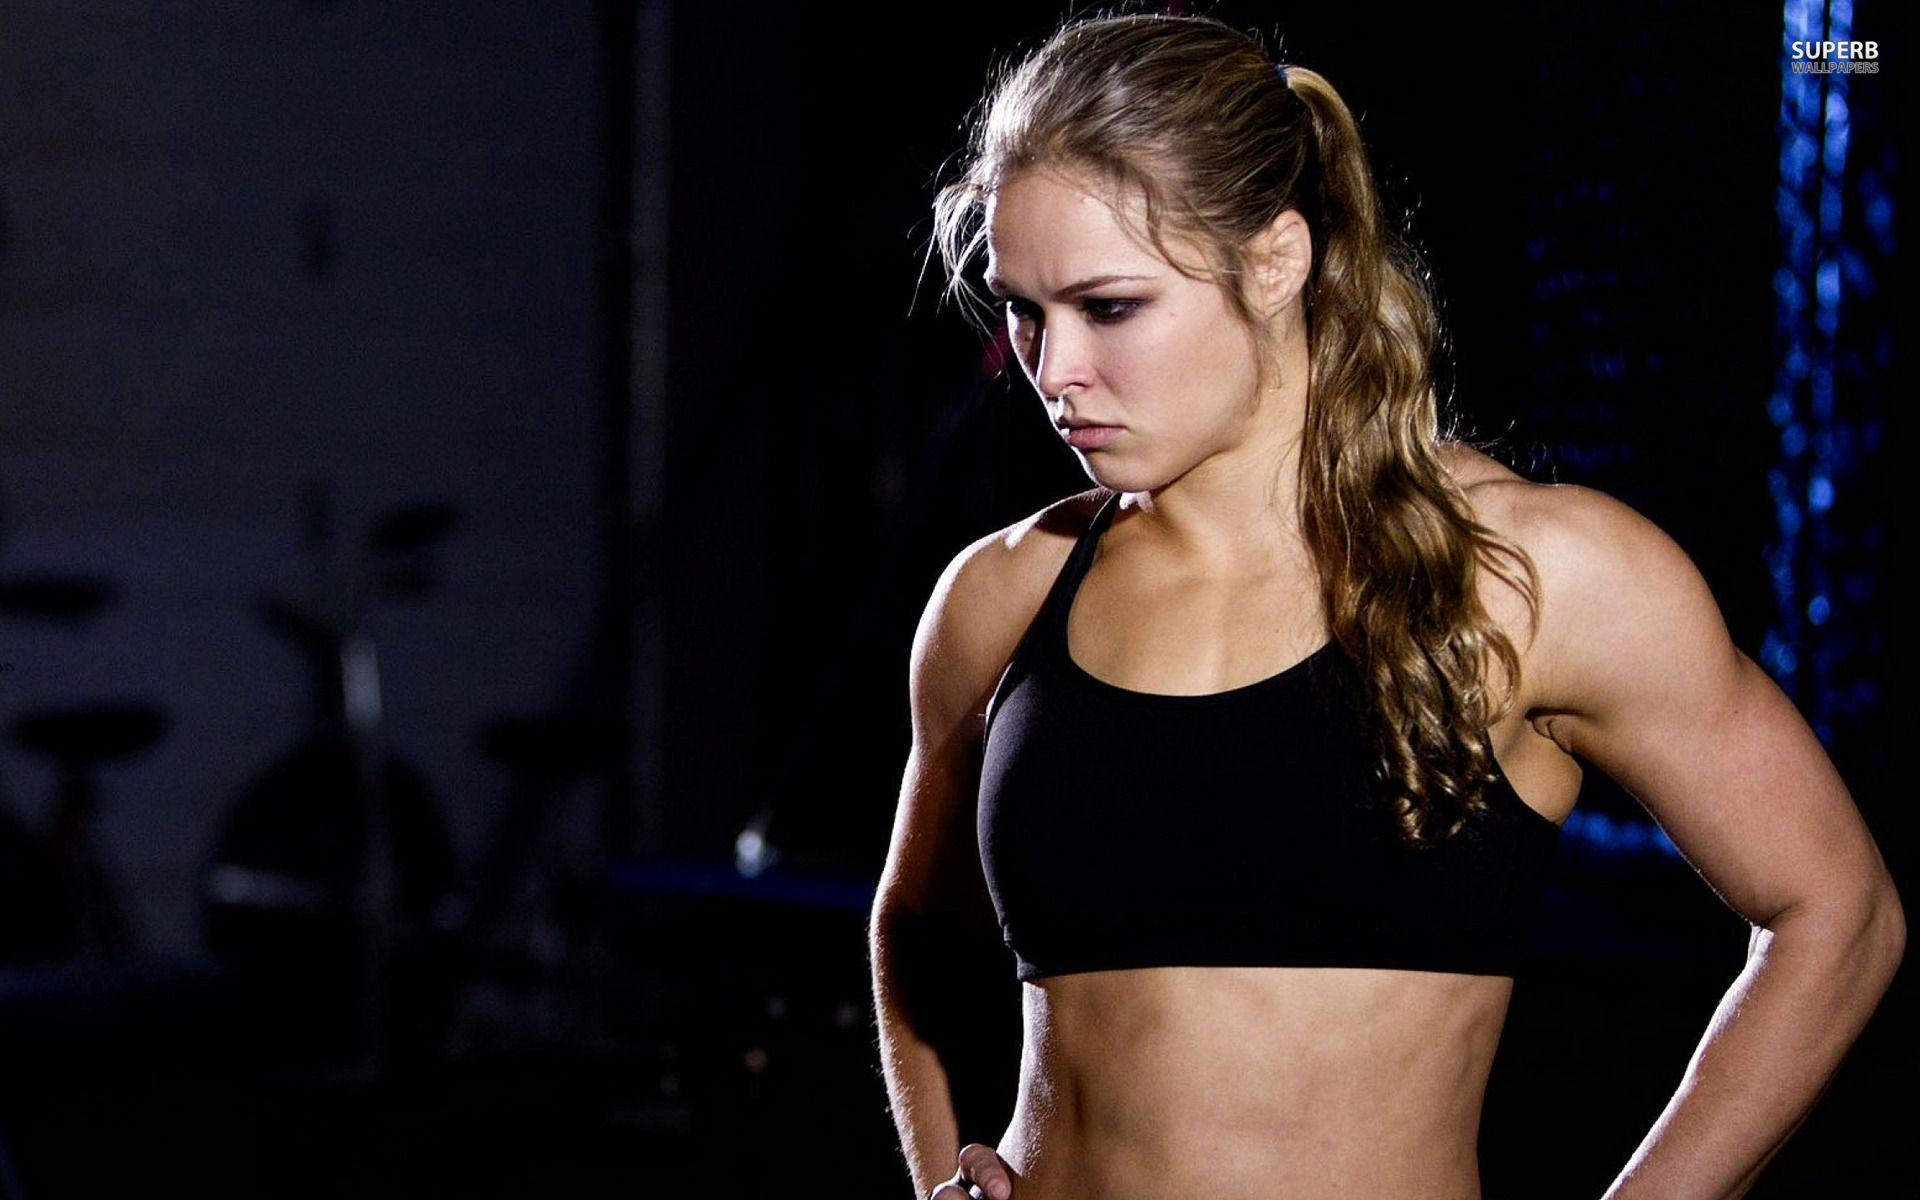 Ronda Rousey Wallpapers High Resolution and Quality Download